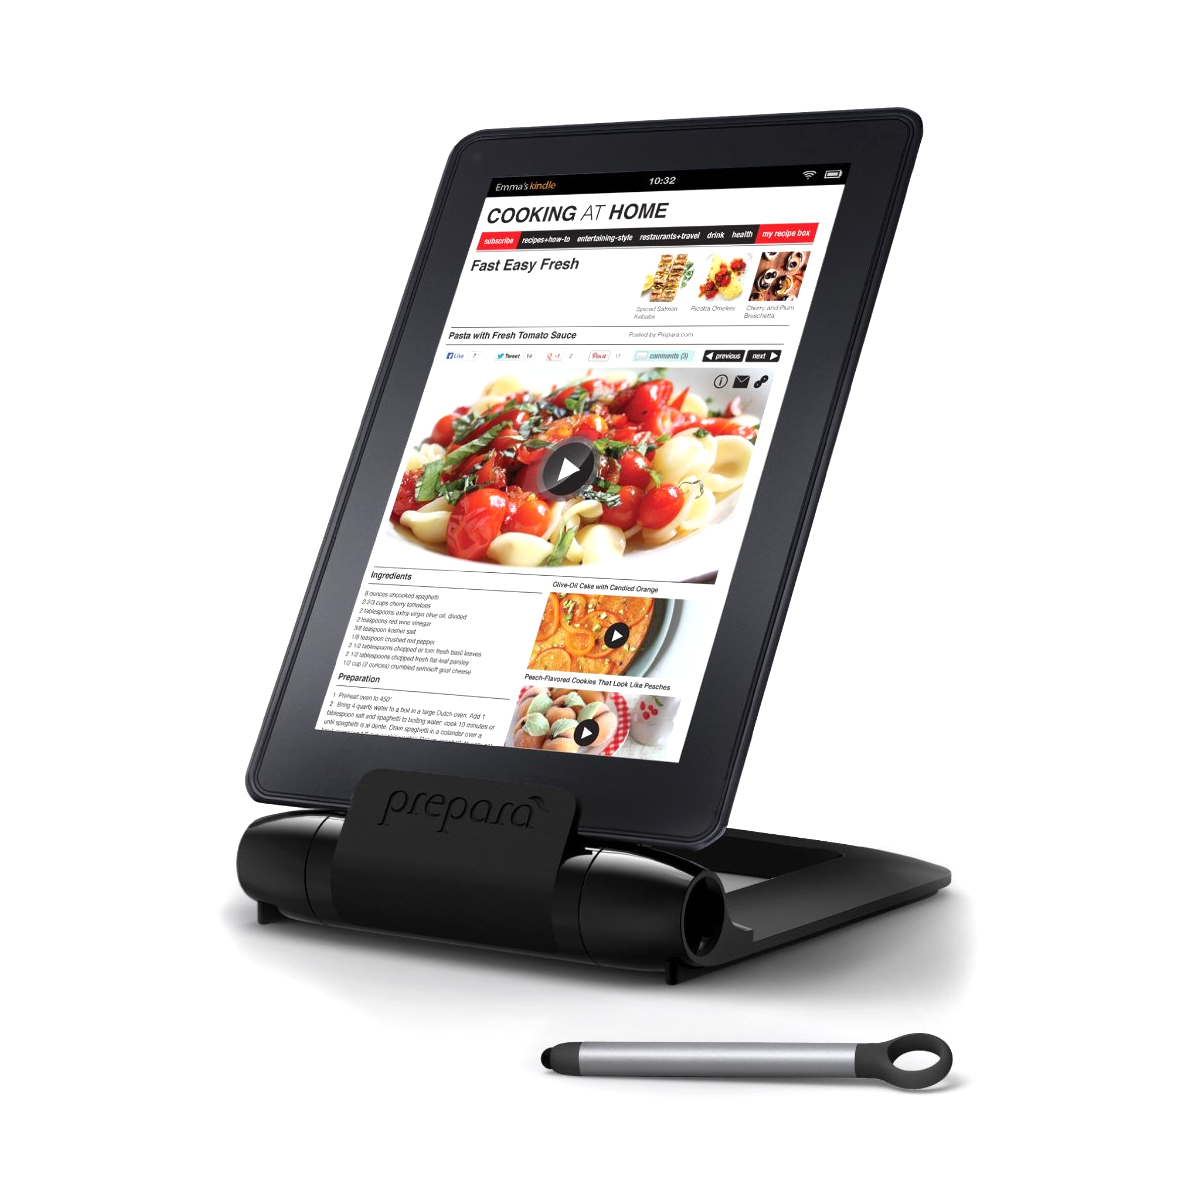 Prepara iPrep Black Adjustable Tablet Stand with Stylus